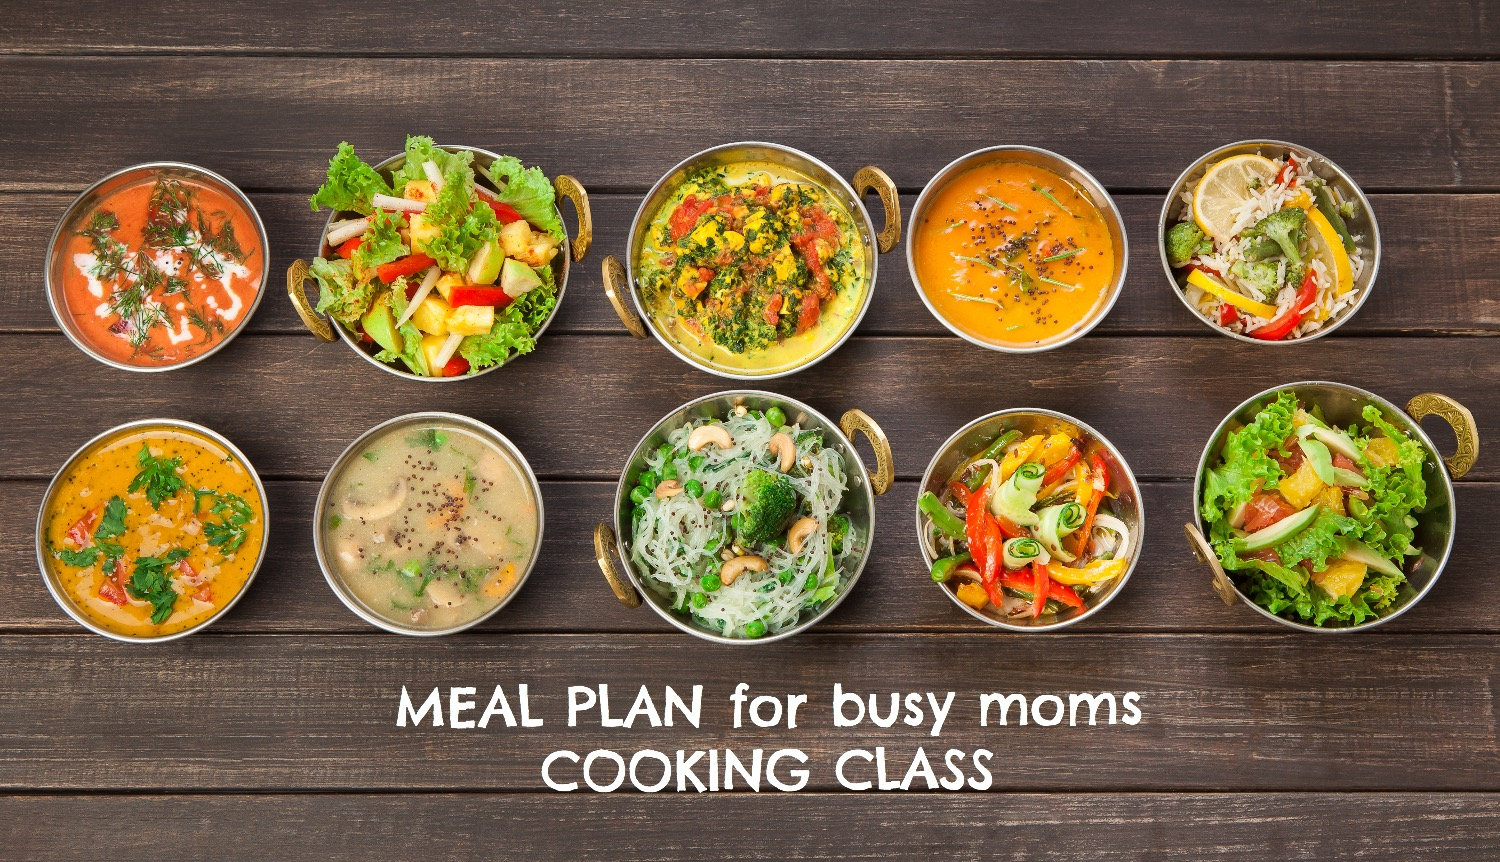 MEAL PLAN for Busy Moms - ON REQUEST